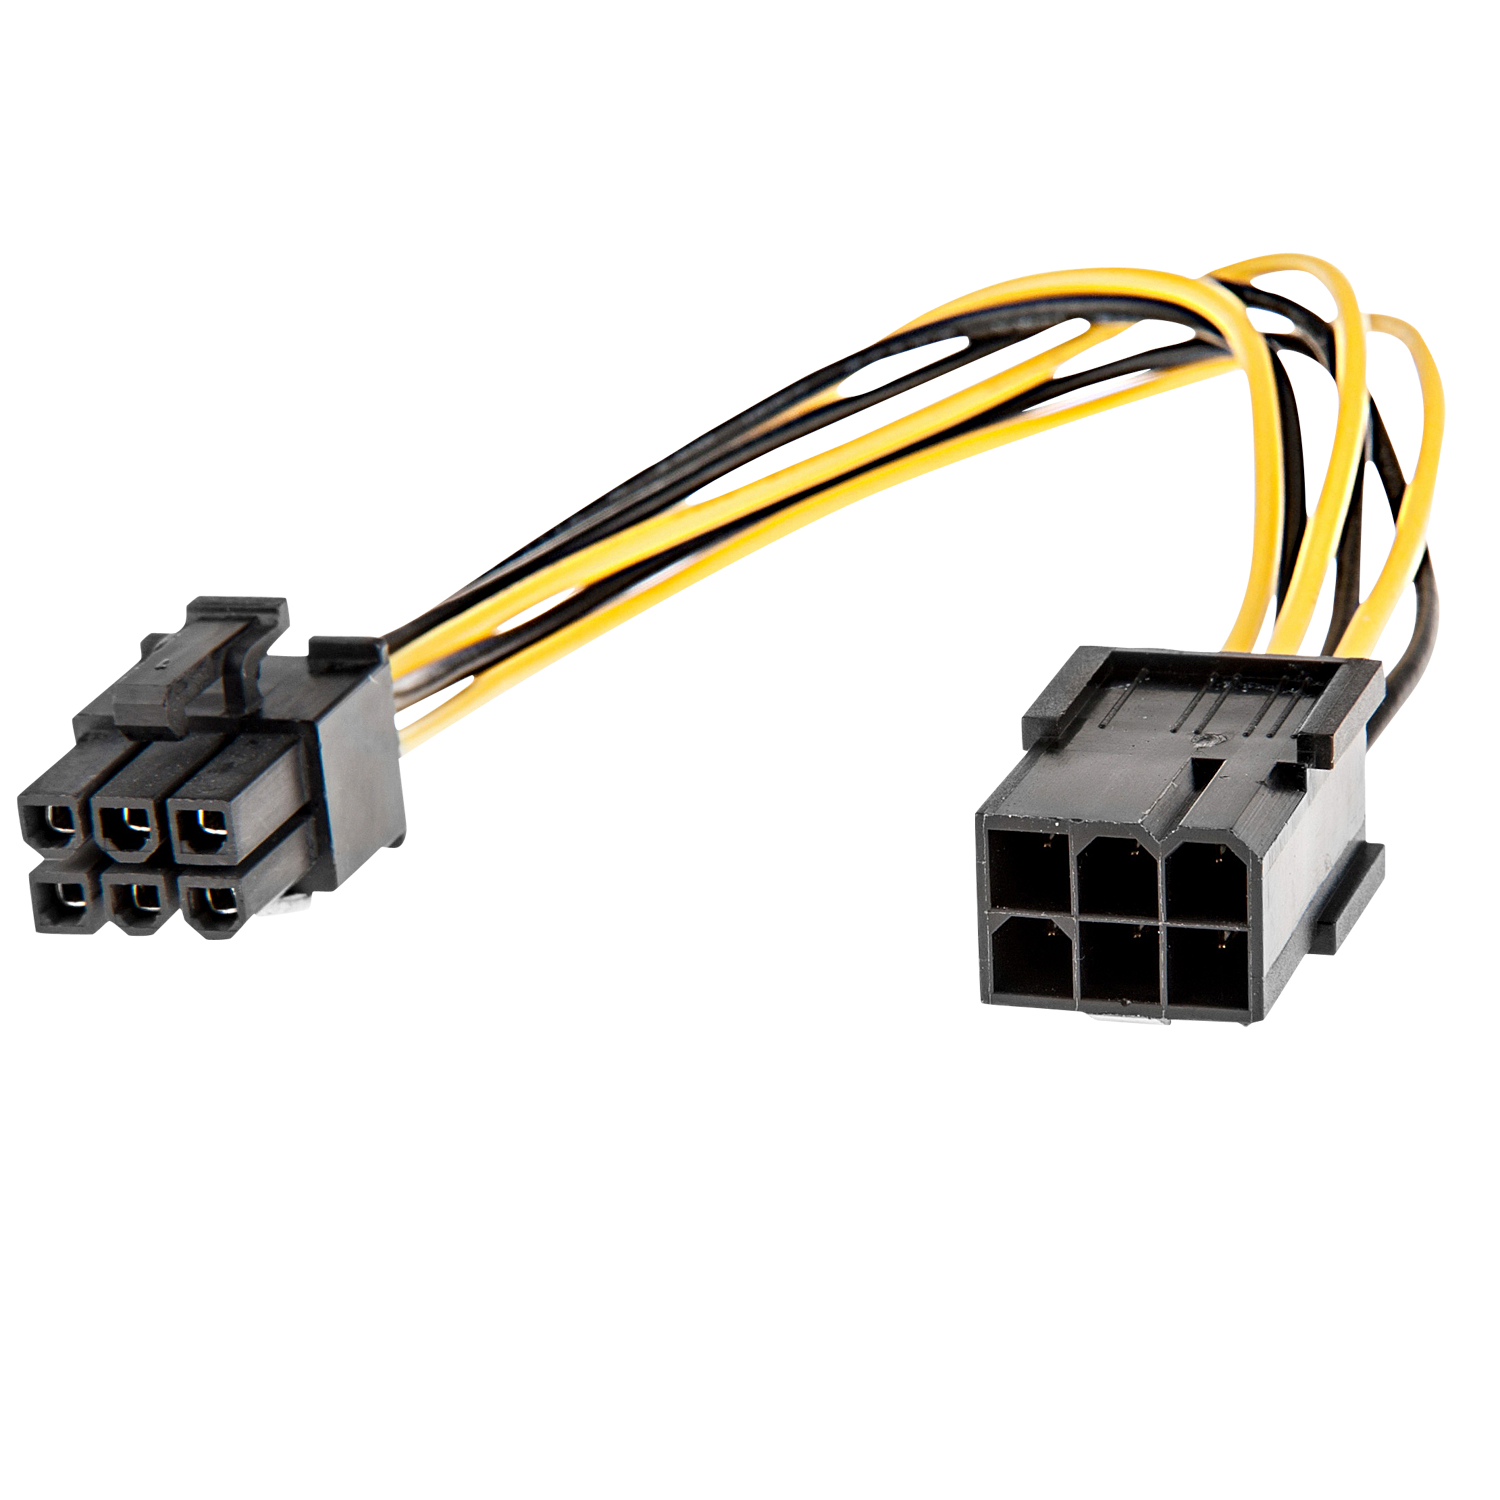 Lindy 33861 internal power cable 0.2 m